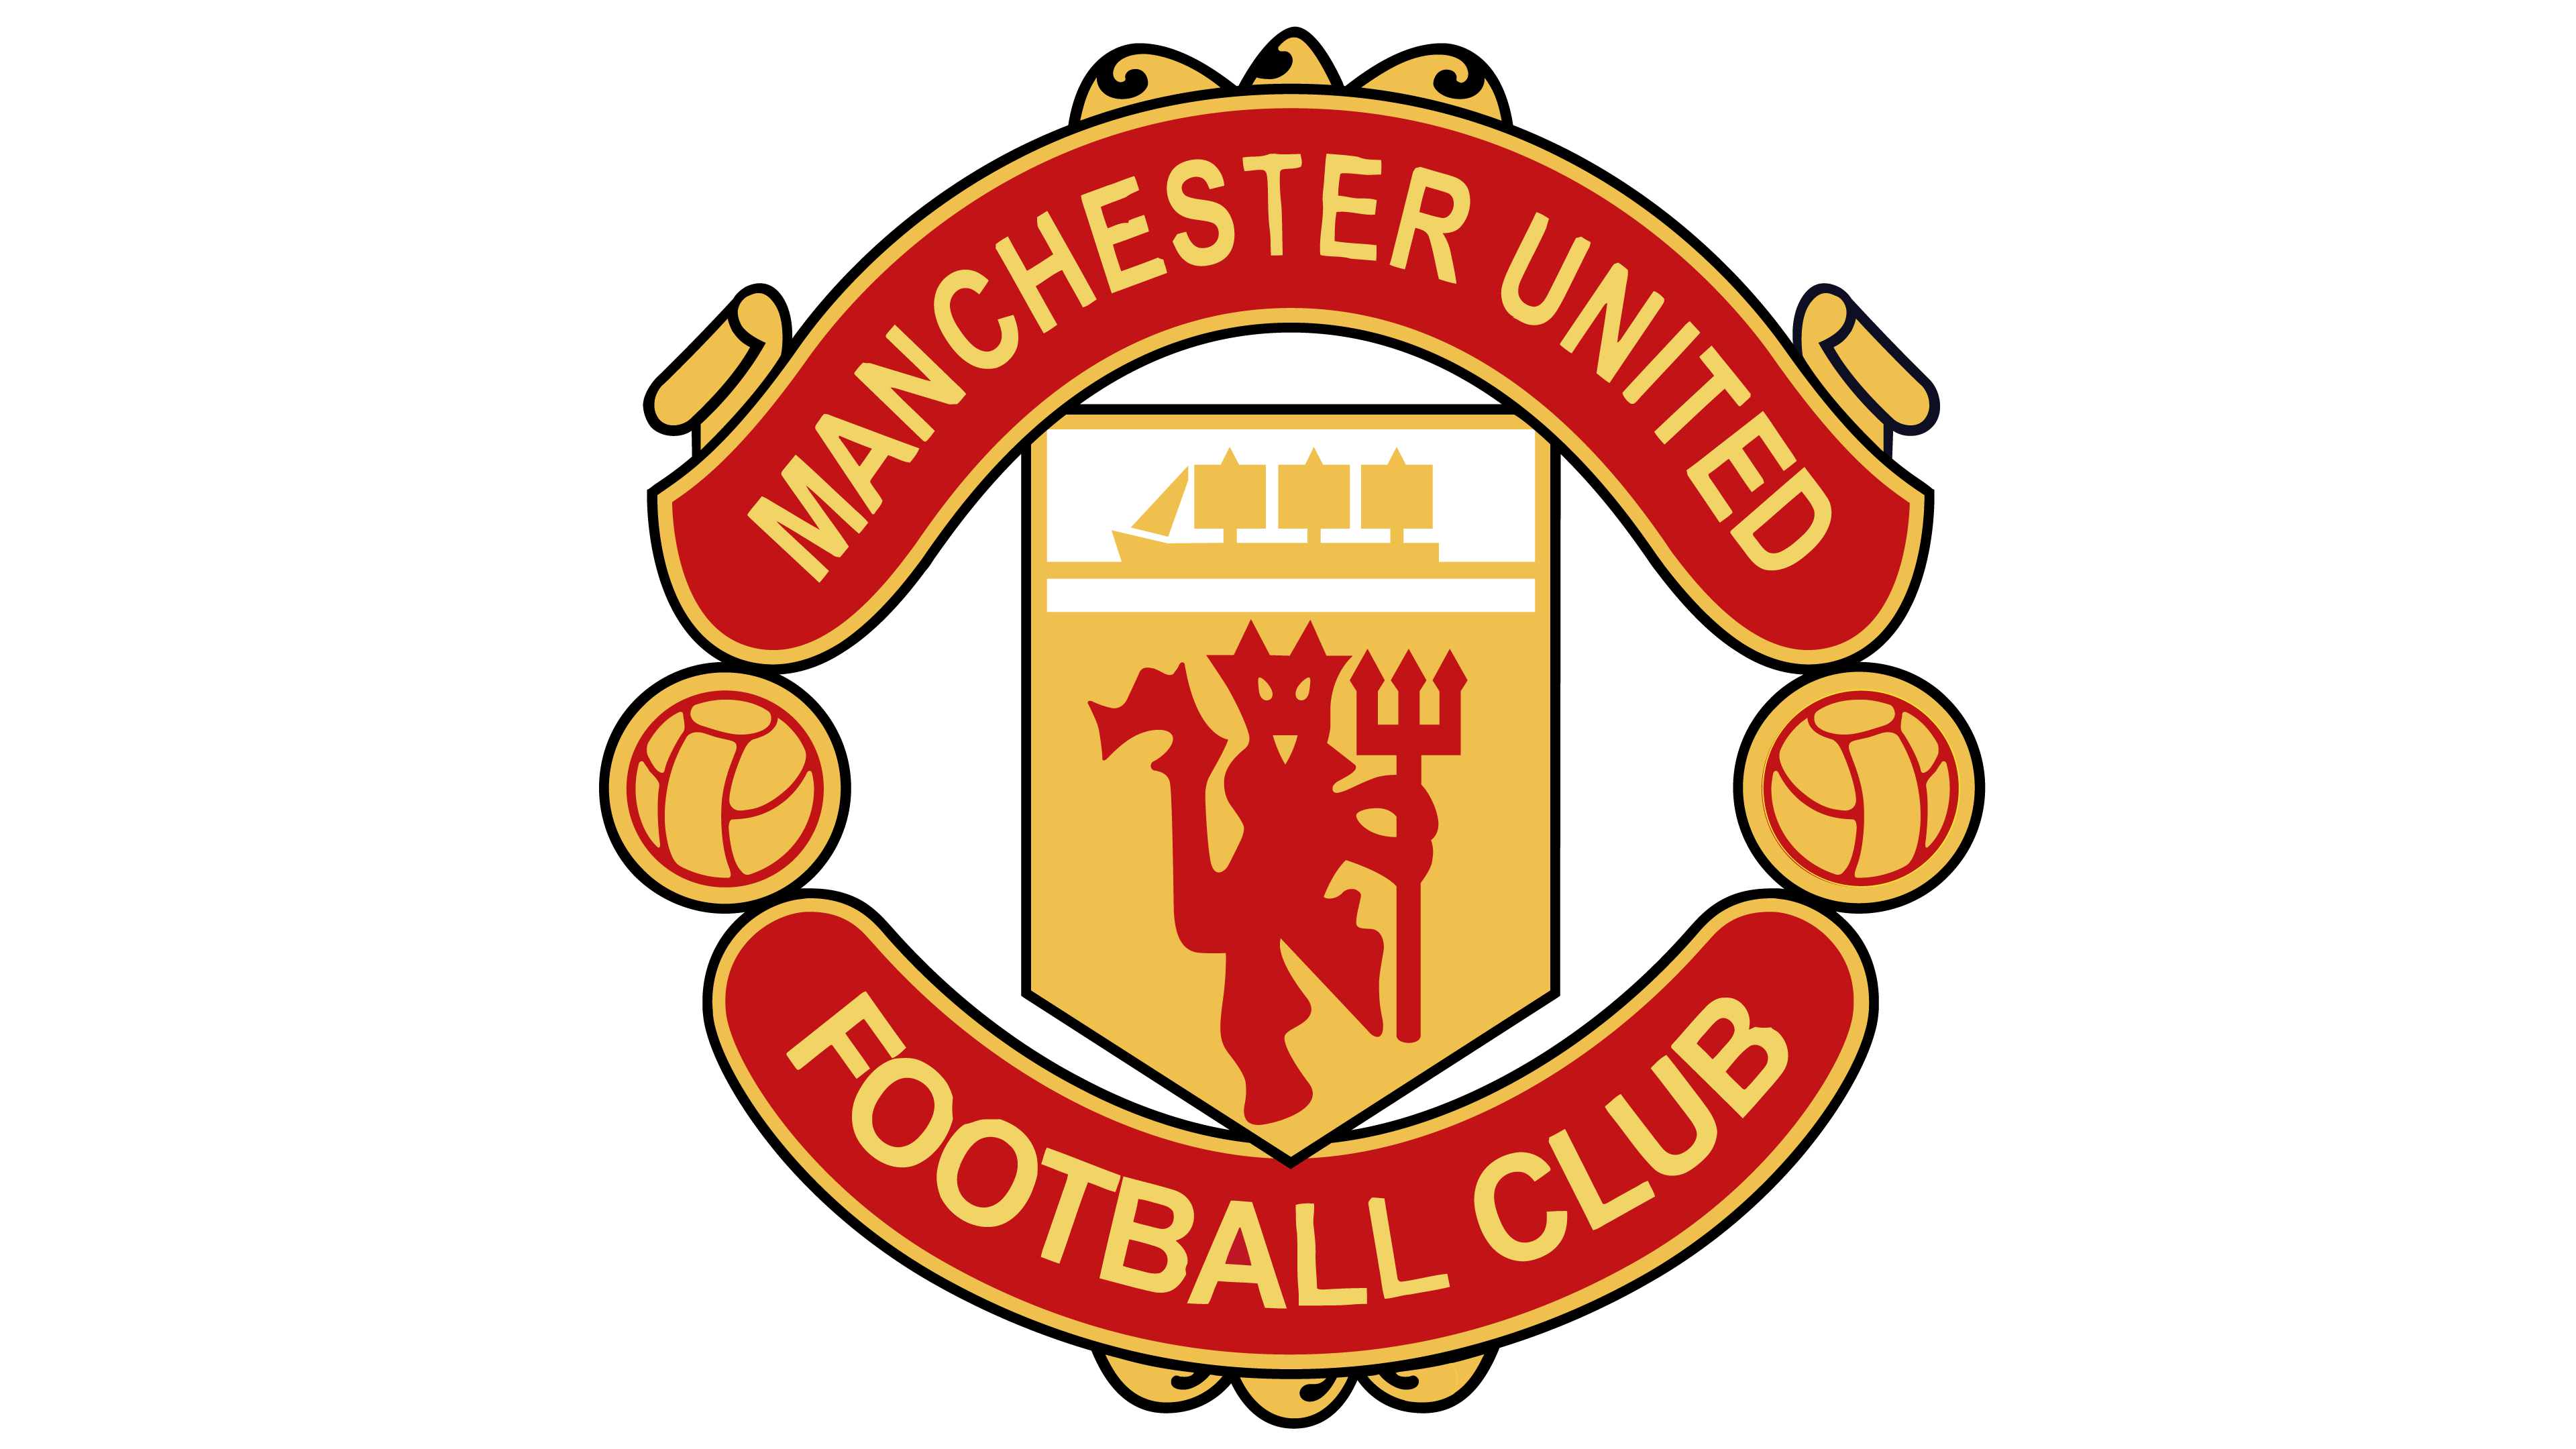 Manchester United Crest Wallpapers Wallpaper Cave